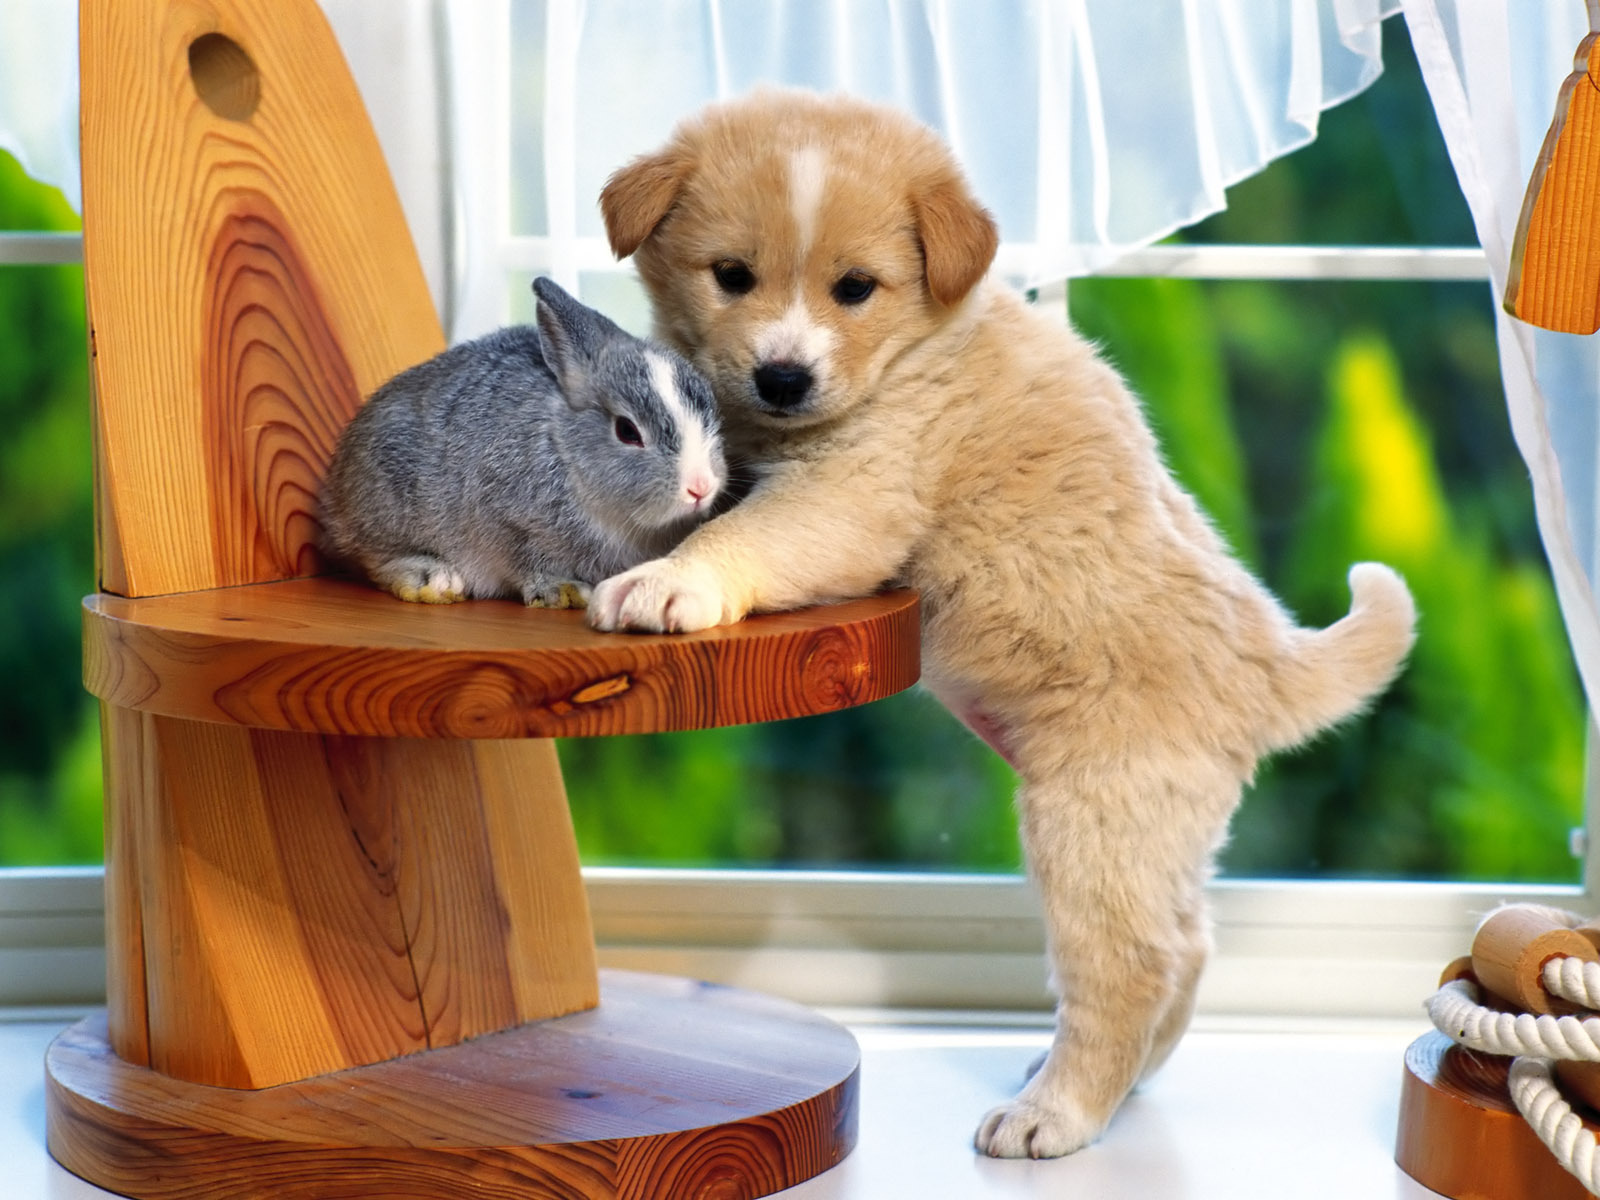 Animal zoo life puppies pics puppy pics puppies pic cute for Pictures of cute dogs